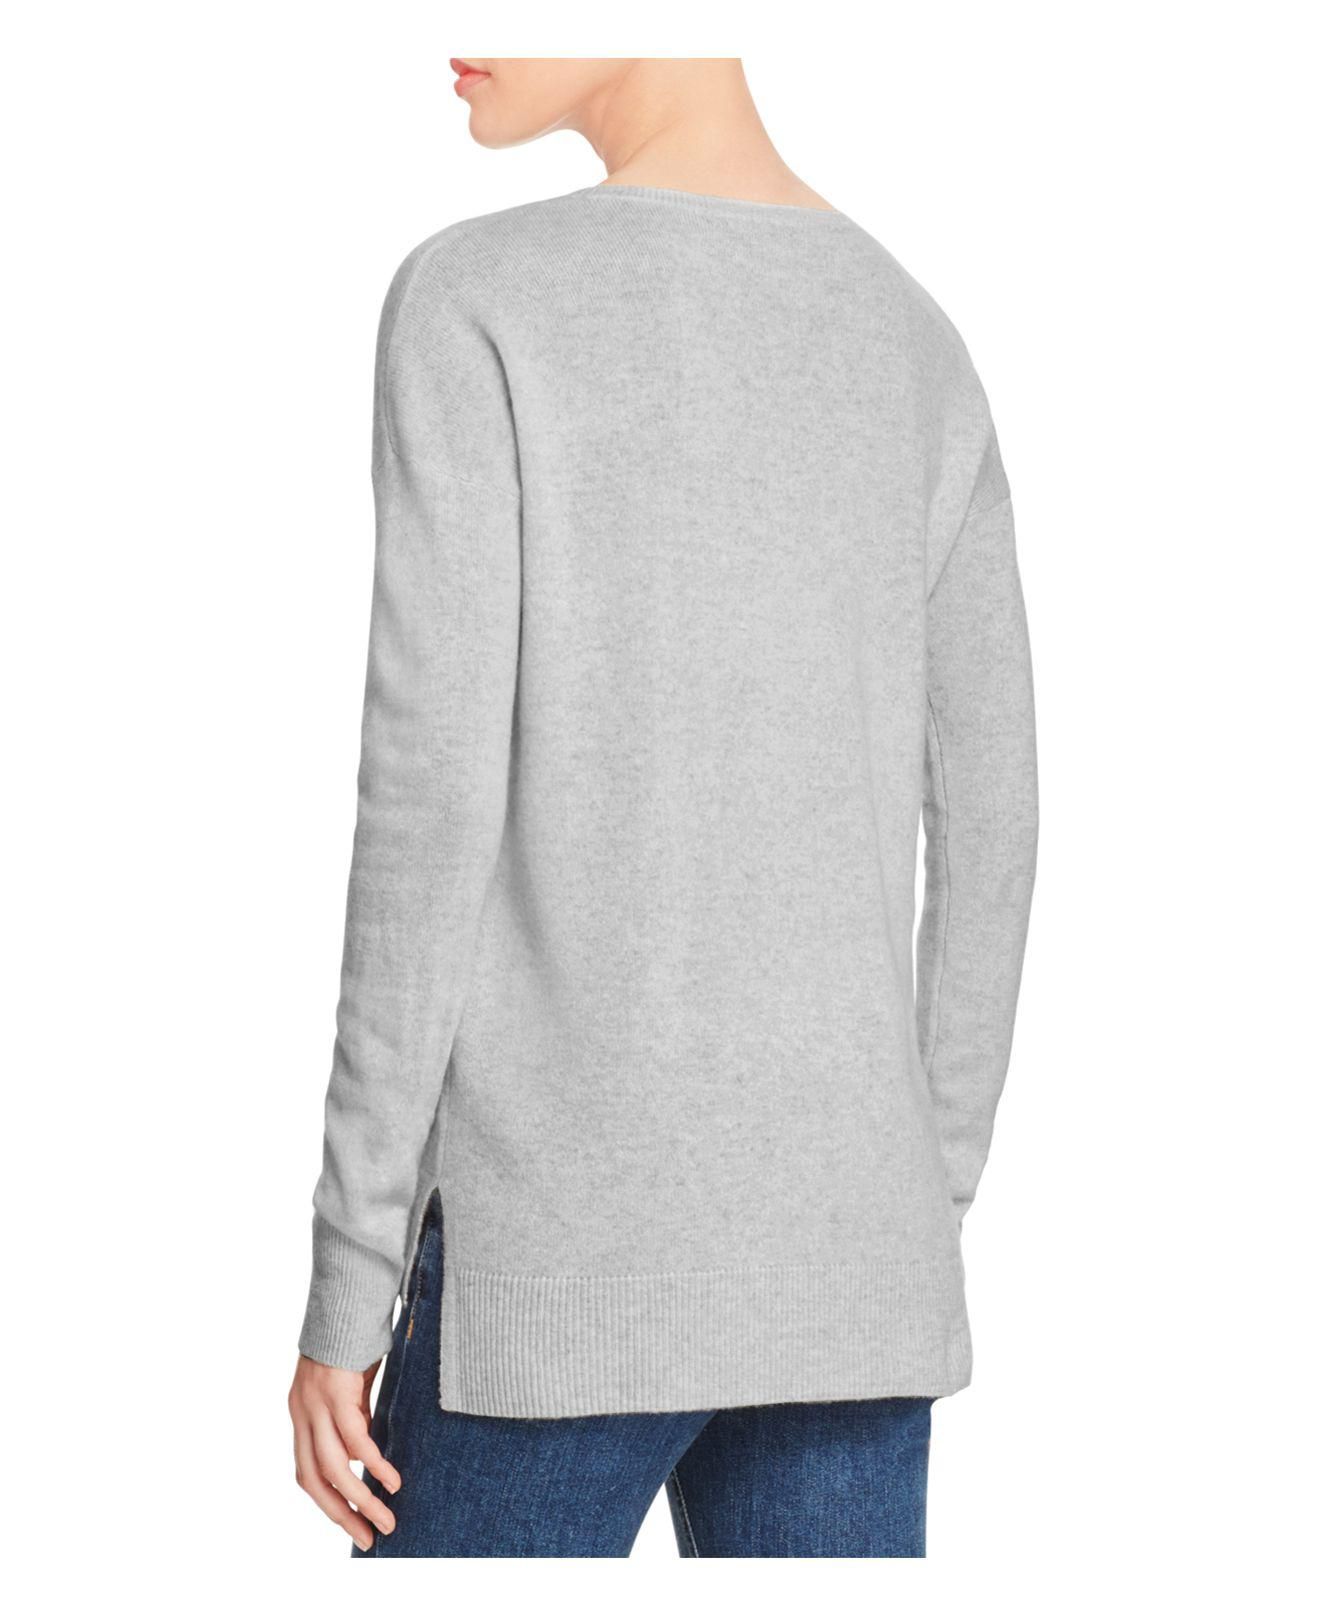 Aqua Cashmere High/low Crewneck Cashmere Sweater in Gray - Save 61 ...